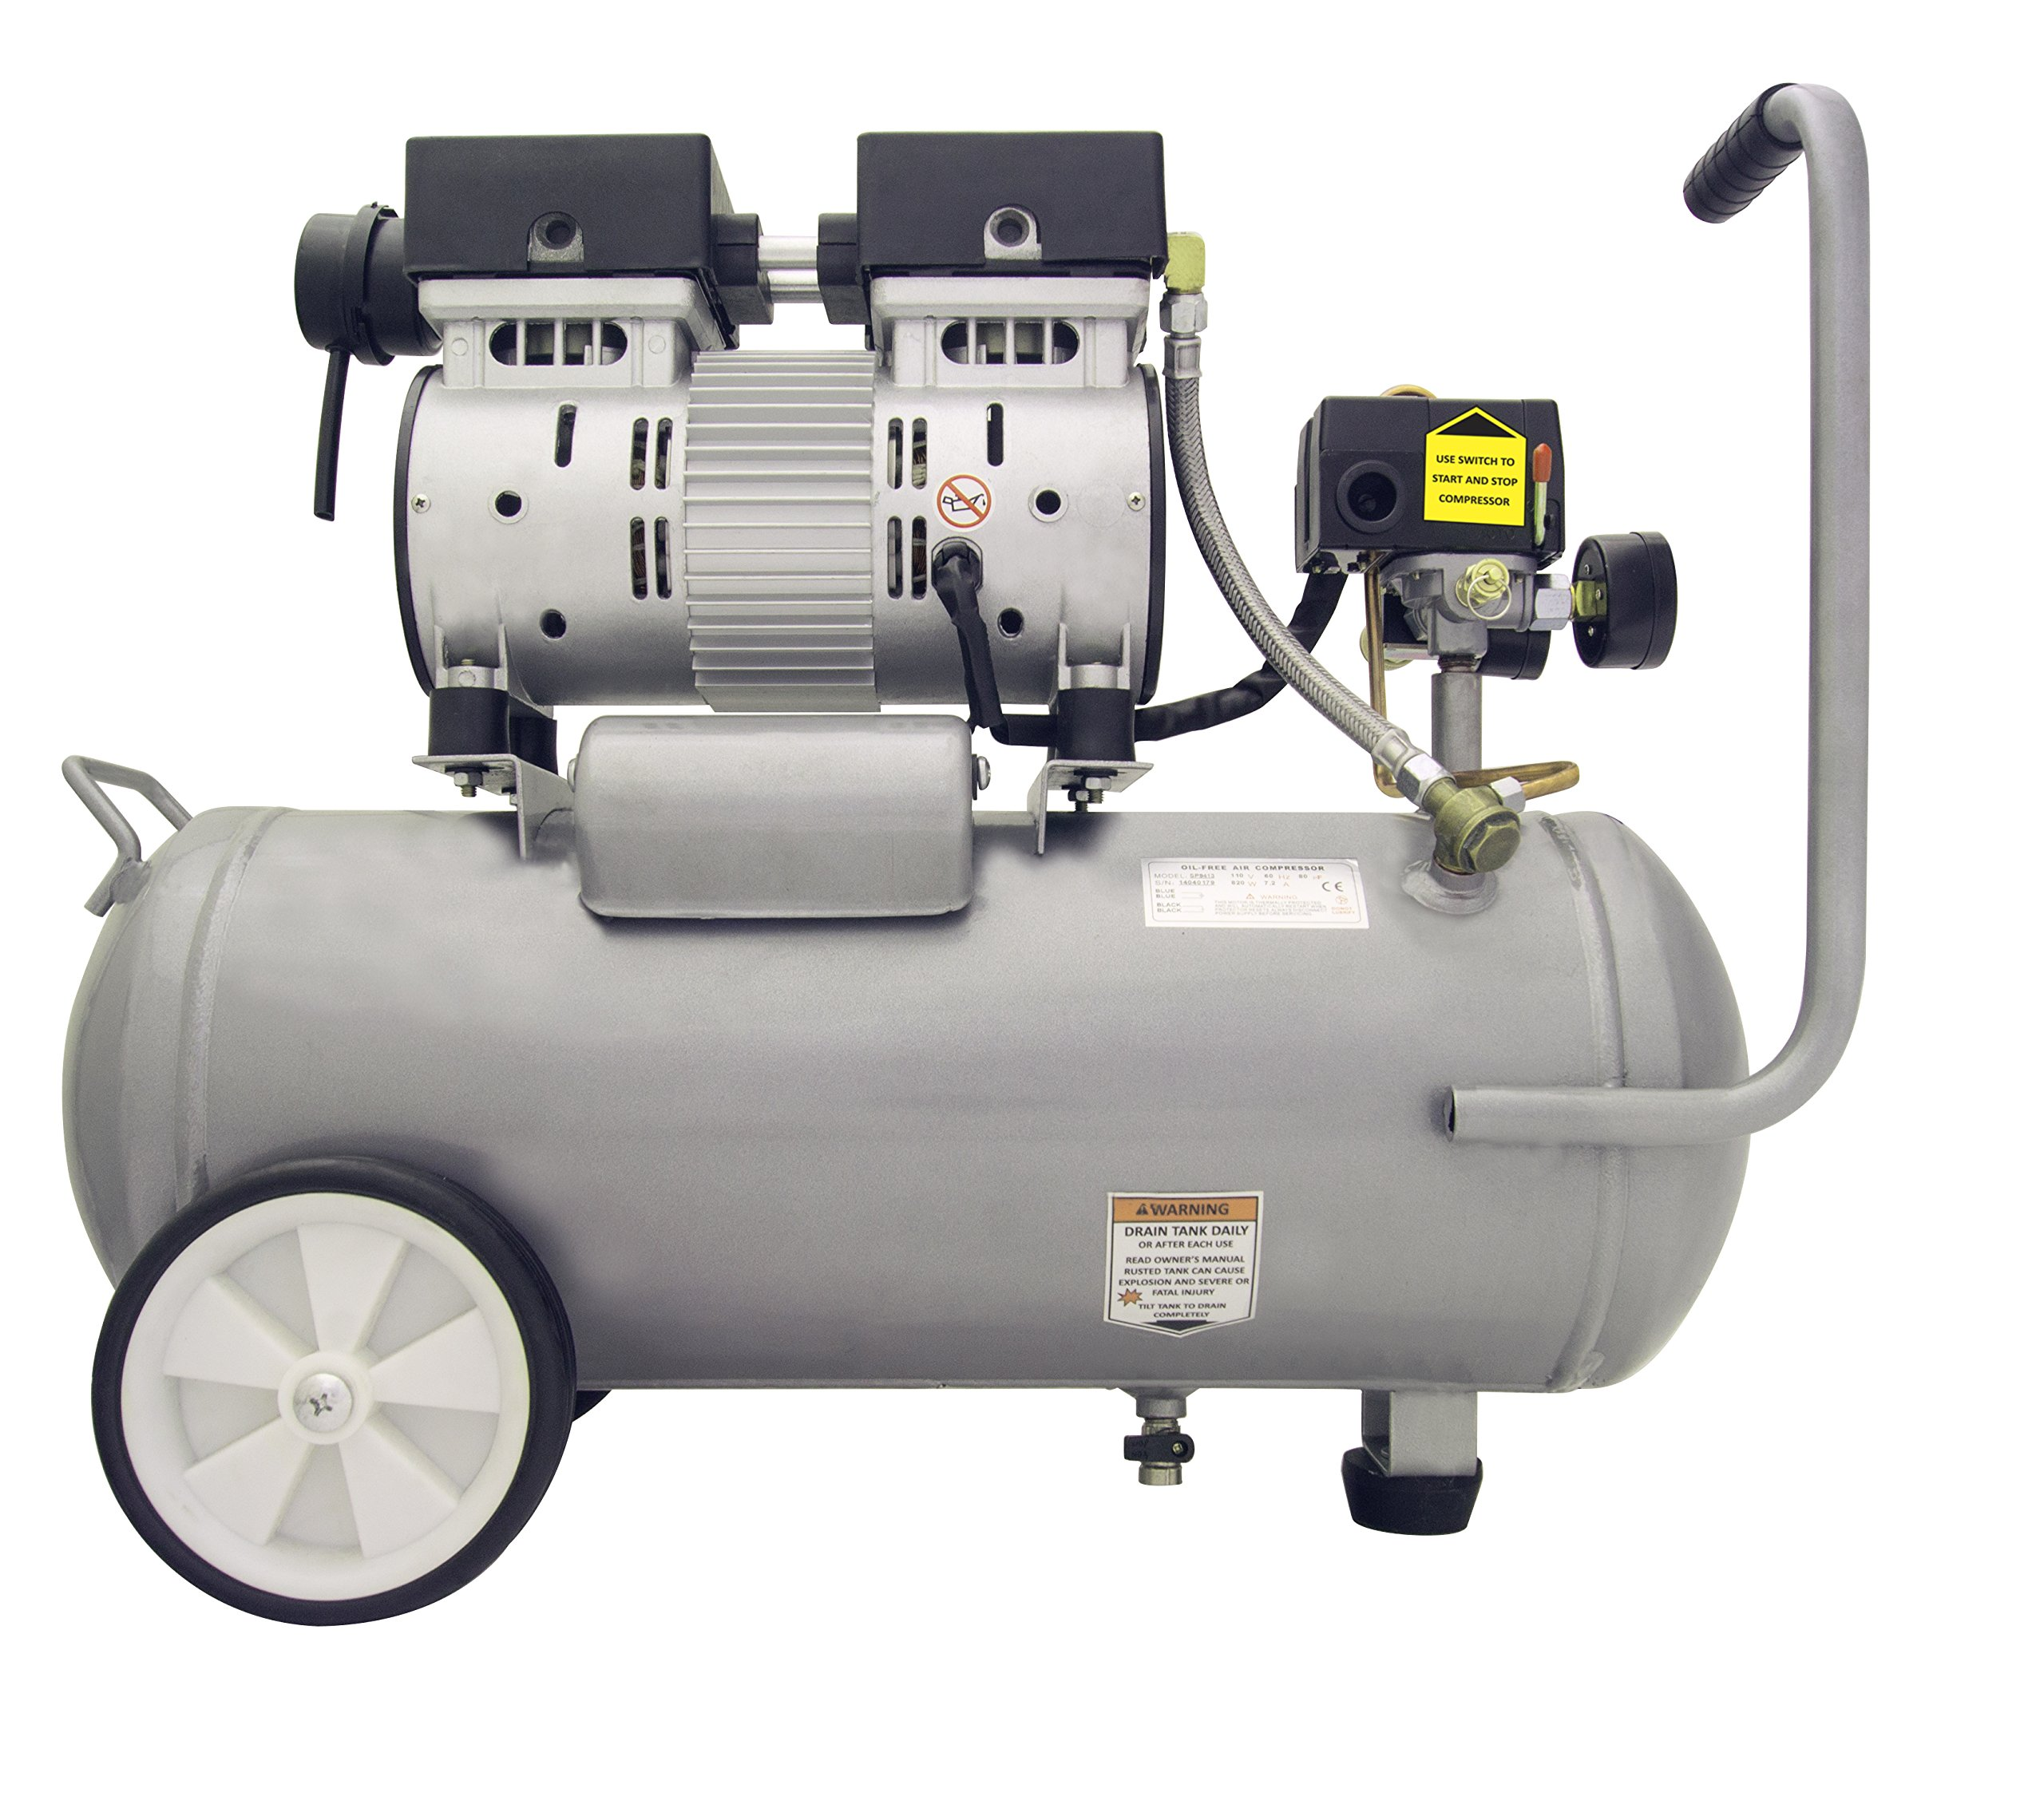 California Air Tools 5510SE Ultra Quiet and Oil-Free 1.0-HP 5.5-Gallon Steel Tank Air Compressor by California Air Tools (Image #2)